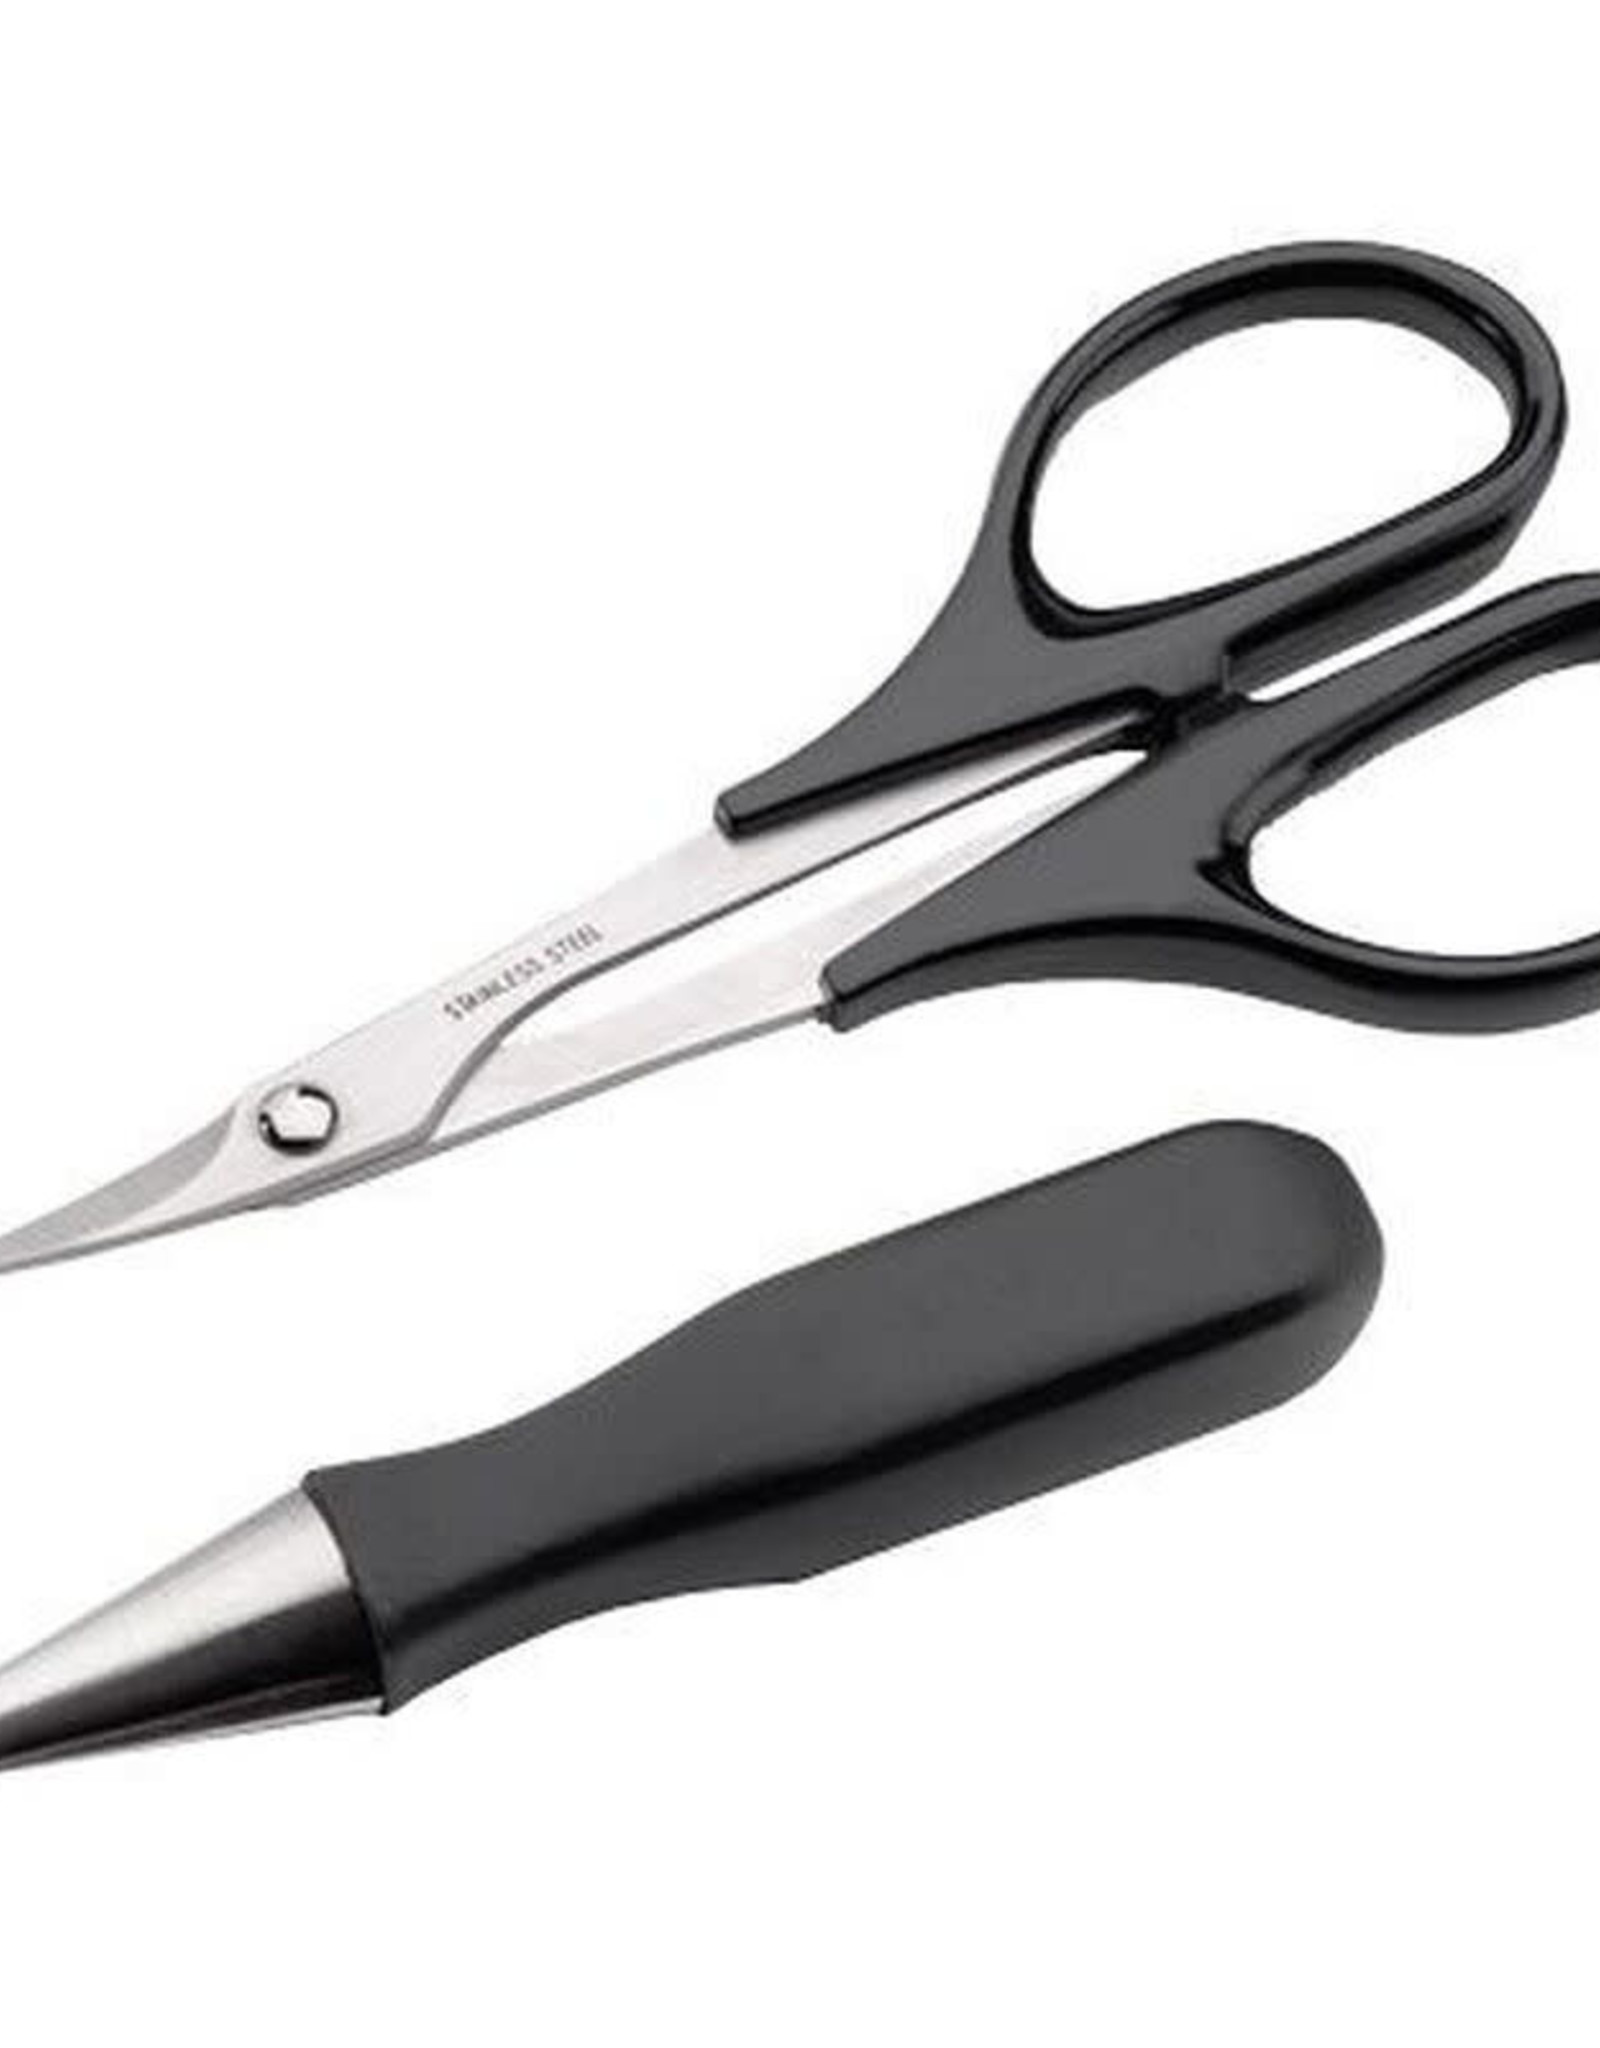 Dubro DUB2330 Body Reamer & Scissors Set